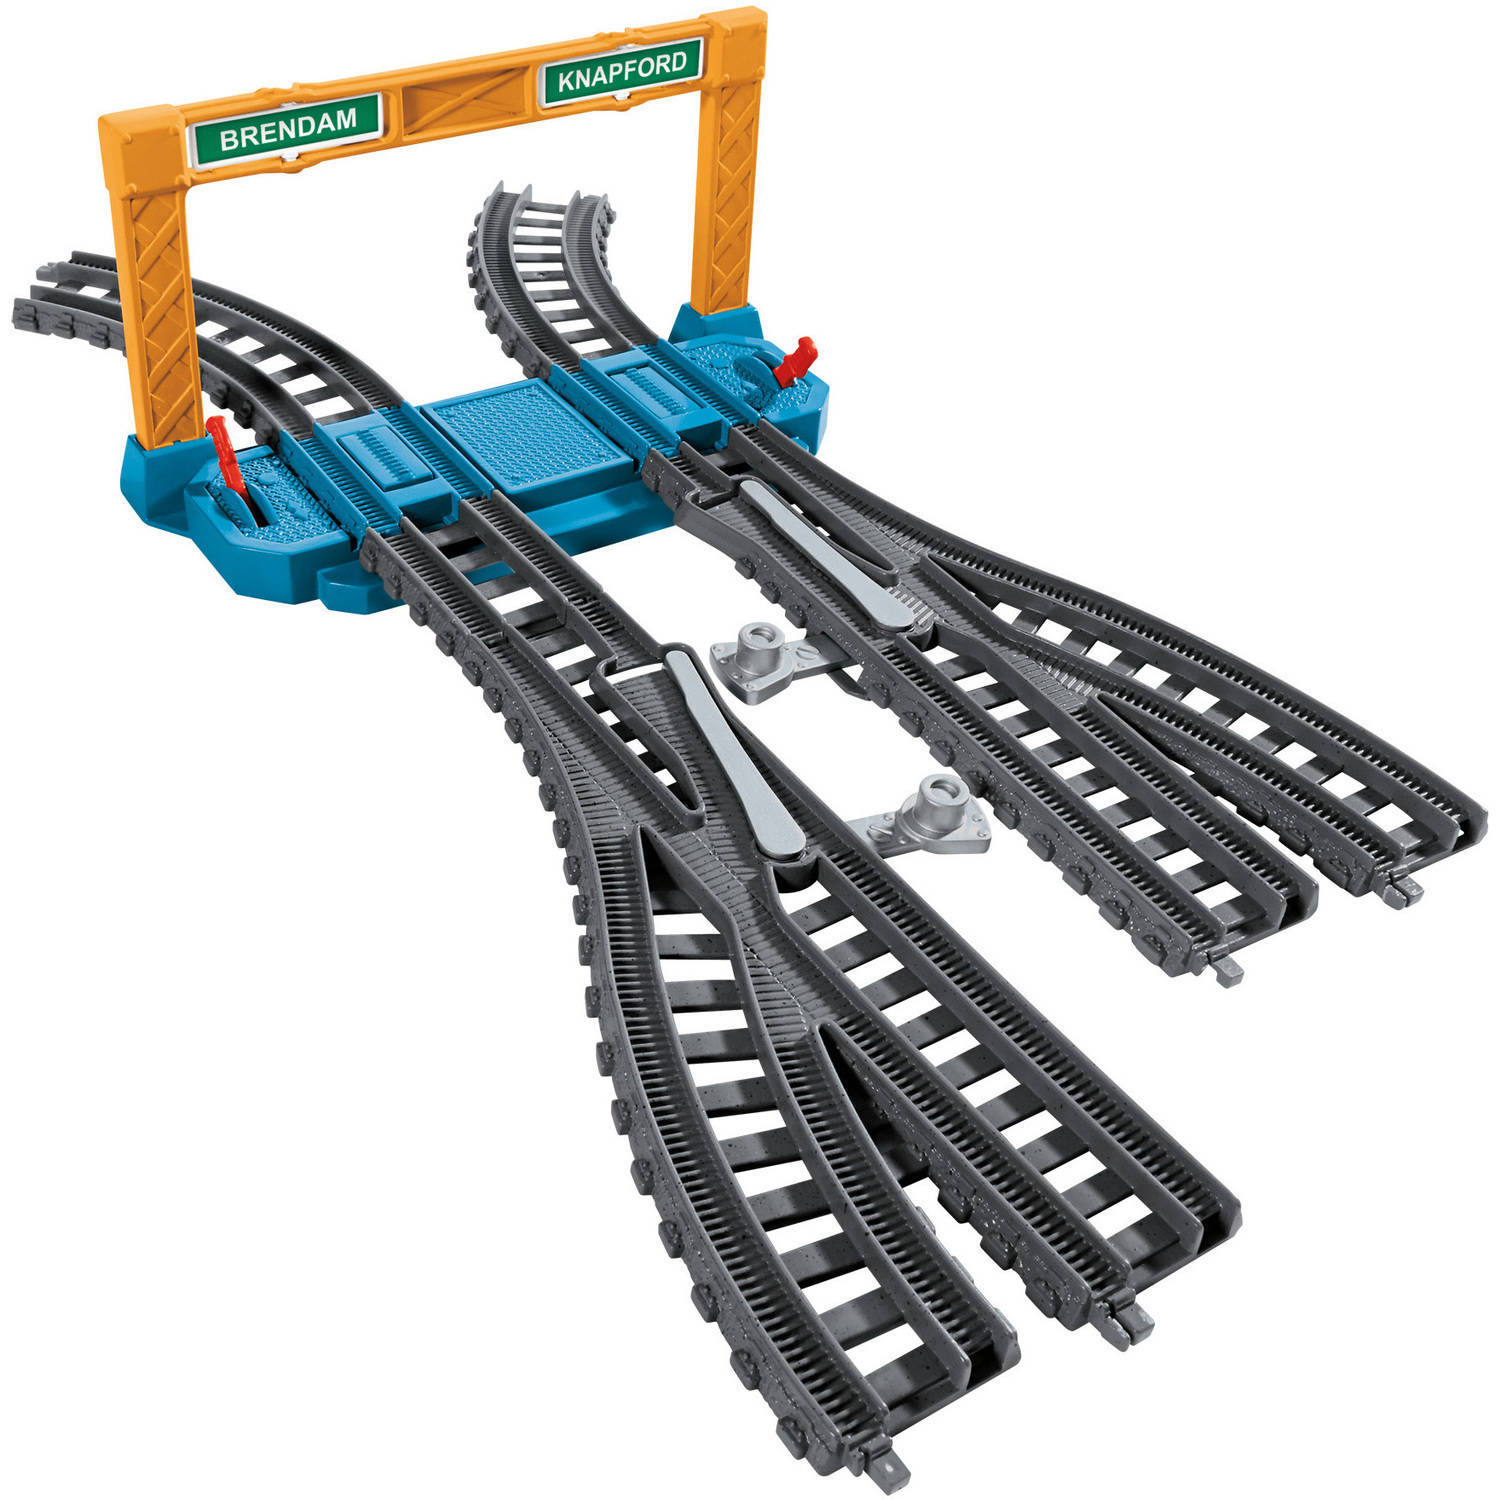 The Best Place To Find Toys For Baby We Carry All The The Top Best Brands For Toys: Thomas & Friends Track Master Expansion Set